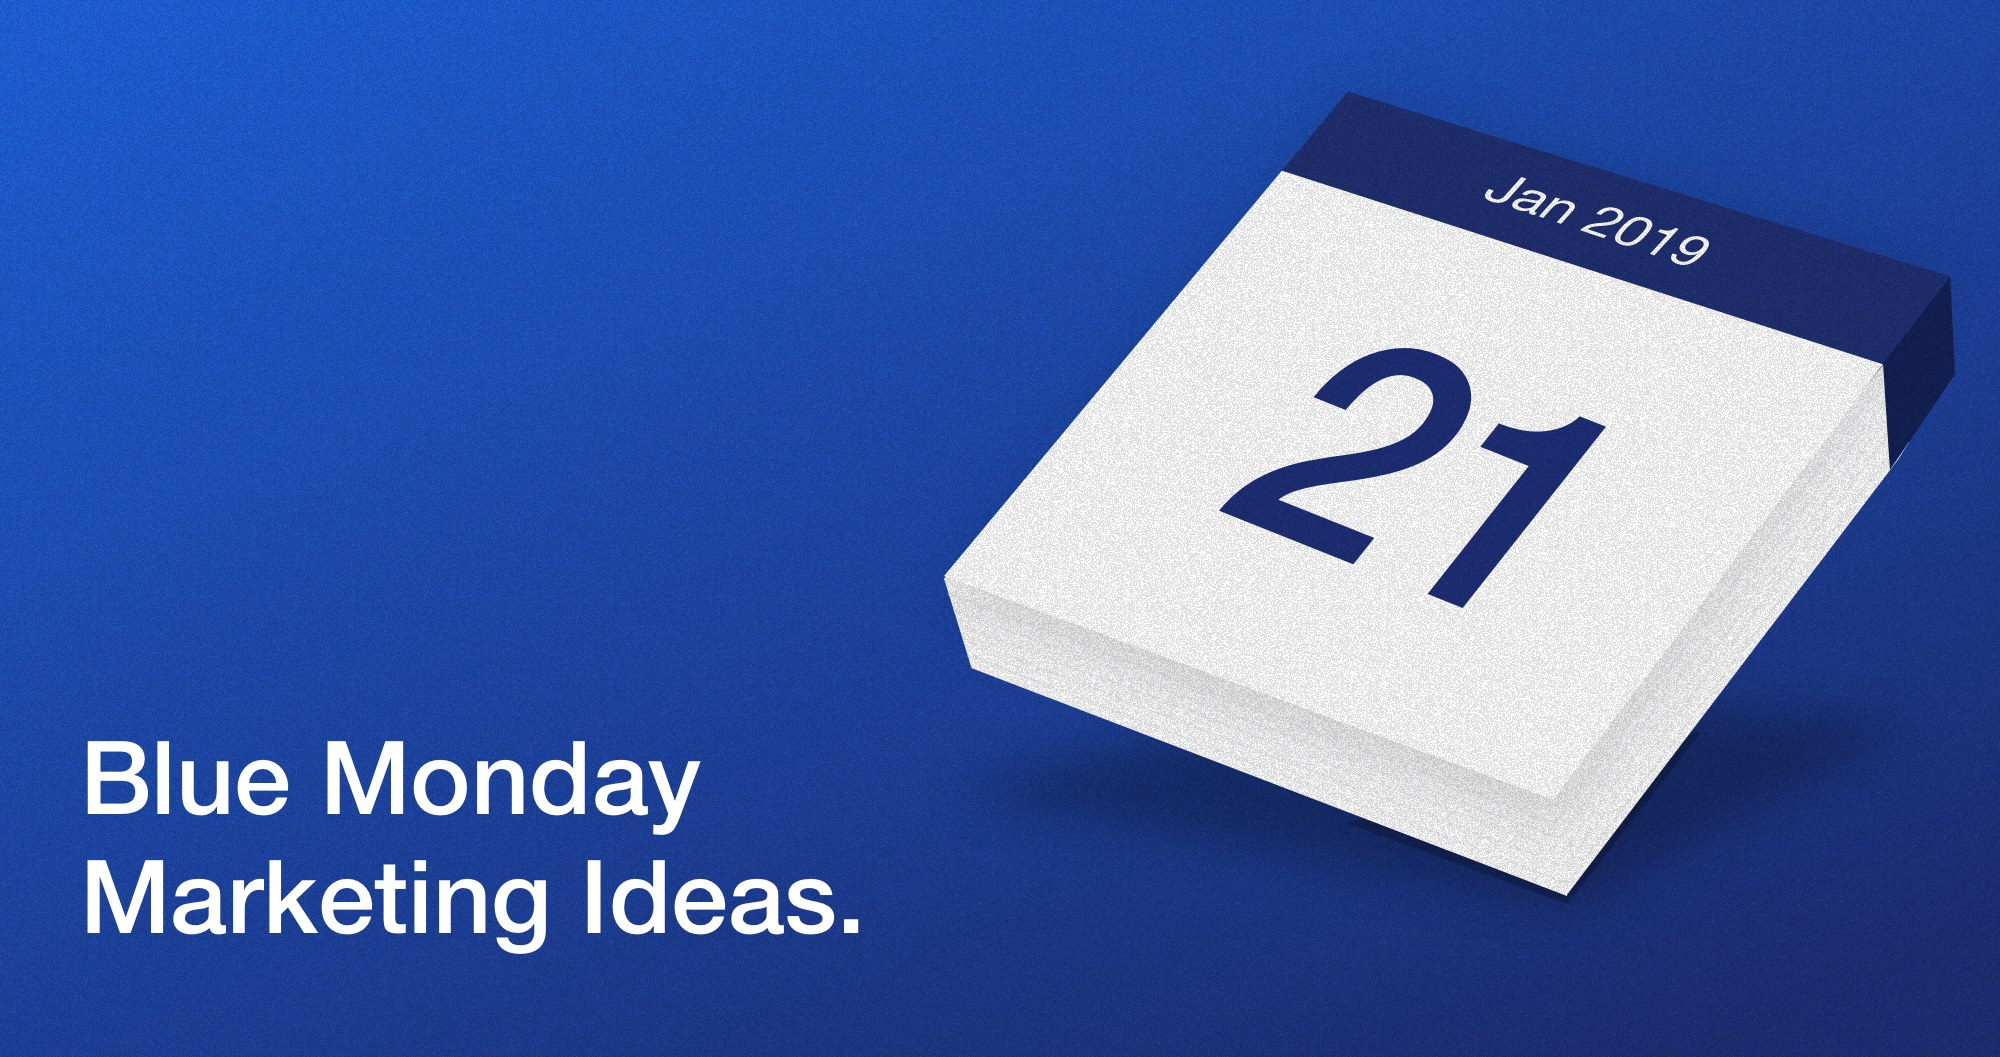 Blue Monday is an effect of marketers idea to promote their products as a solution for the saddest day of the year. Check how Blue Monday began and learn marketing ideas on how to use it for your business.